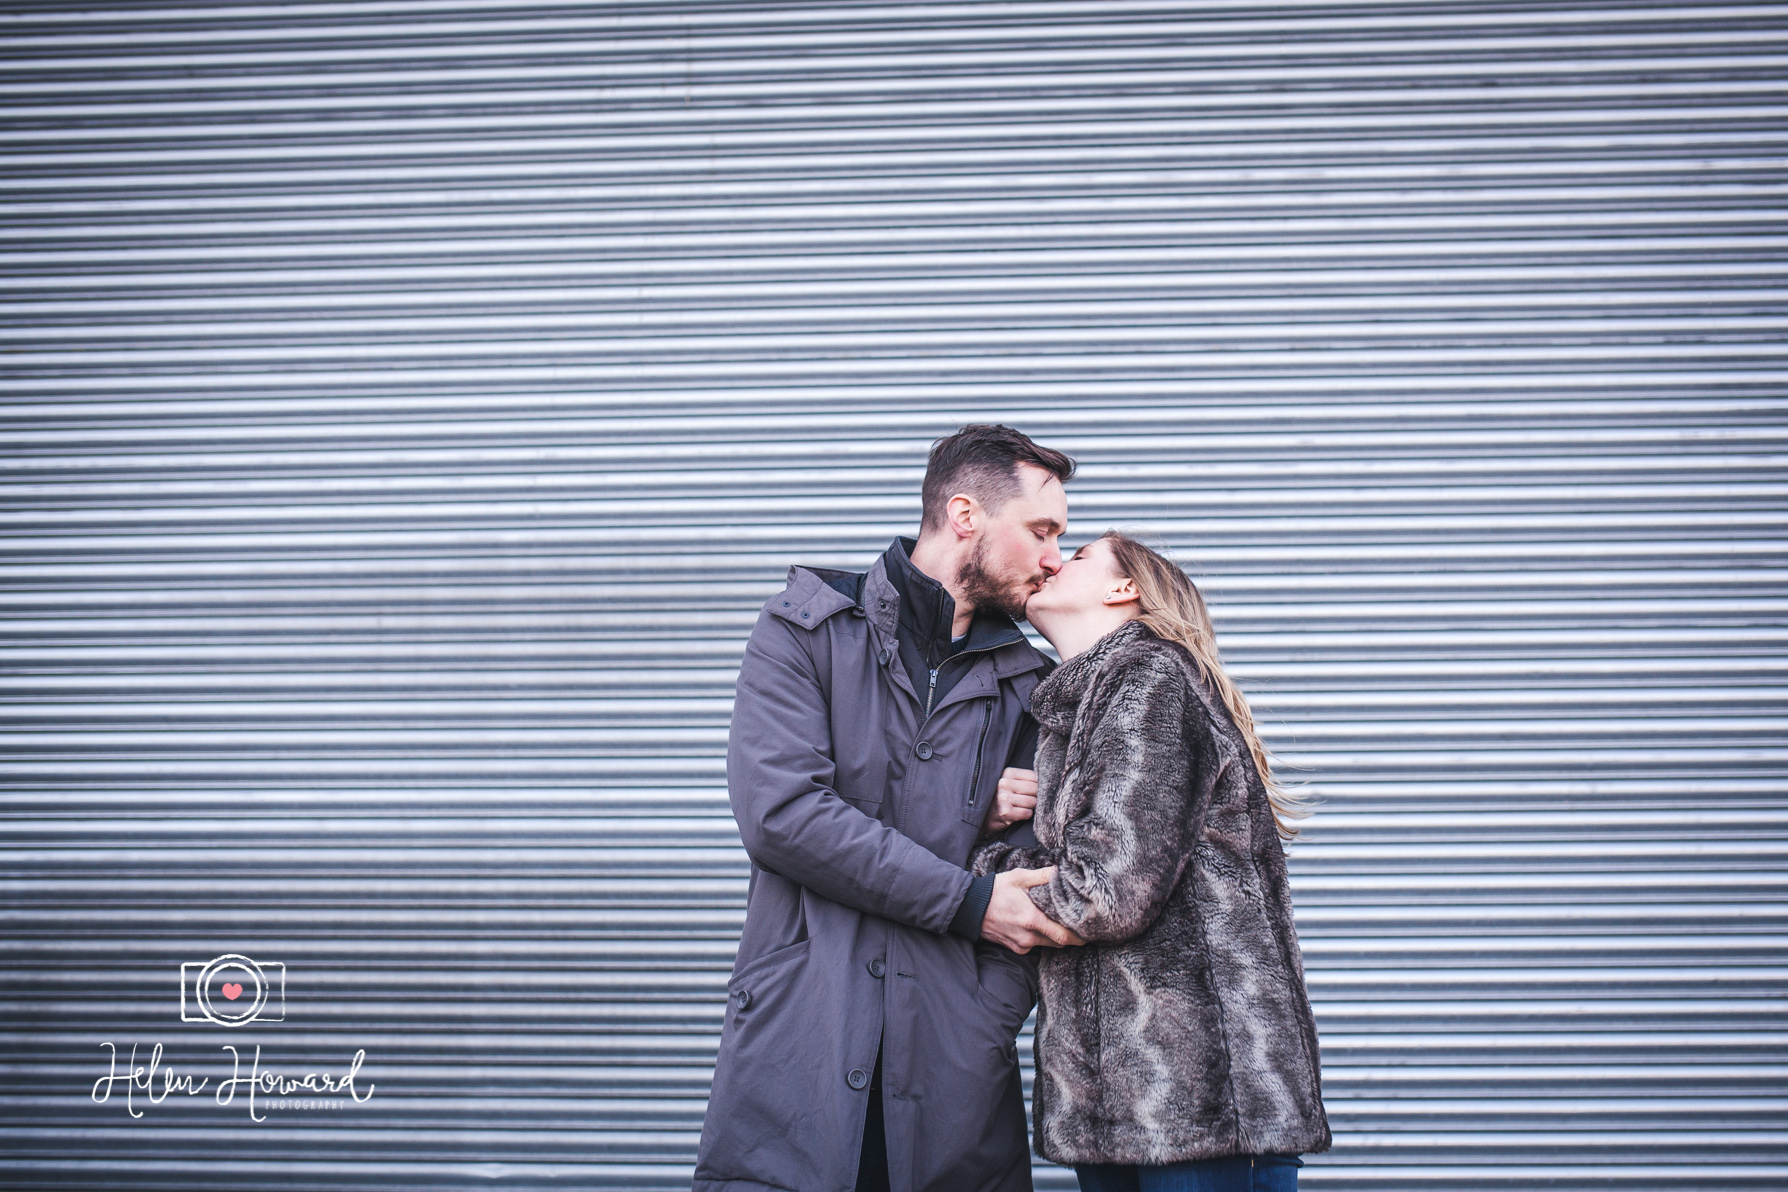 Engagement shoot by Helen Howard Photography